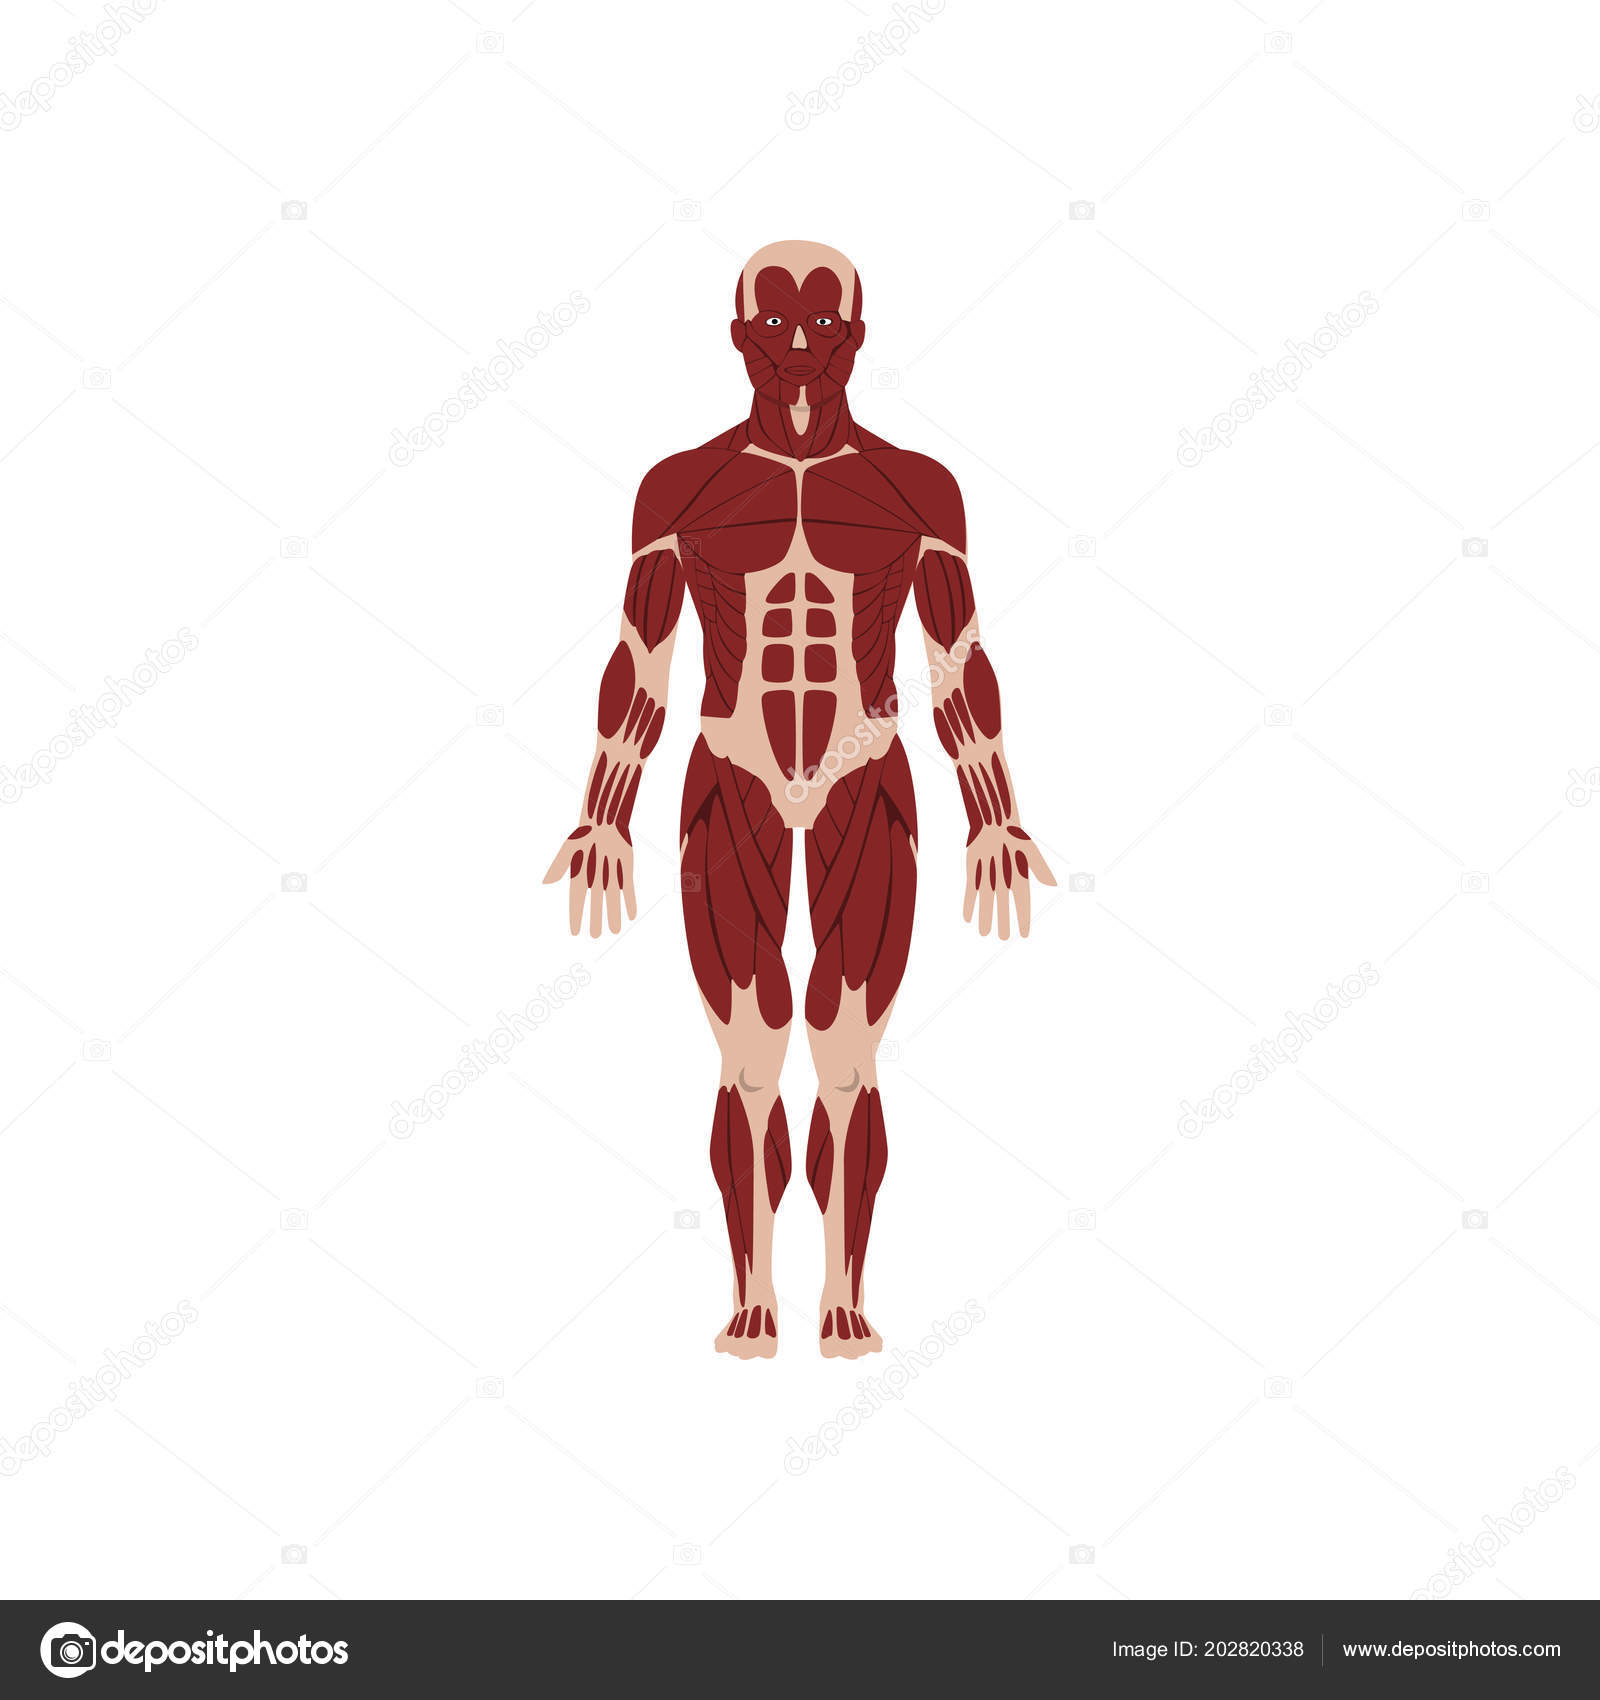 Human Skeletal System Anatomy Of Human Body Vector Illustration On